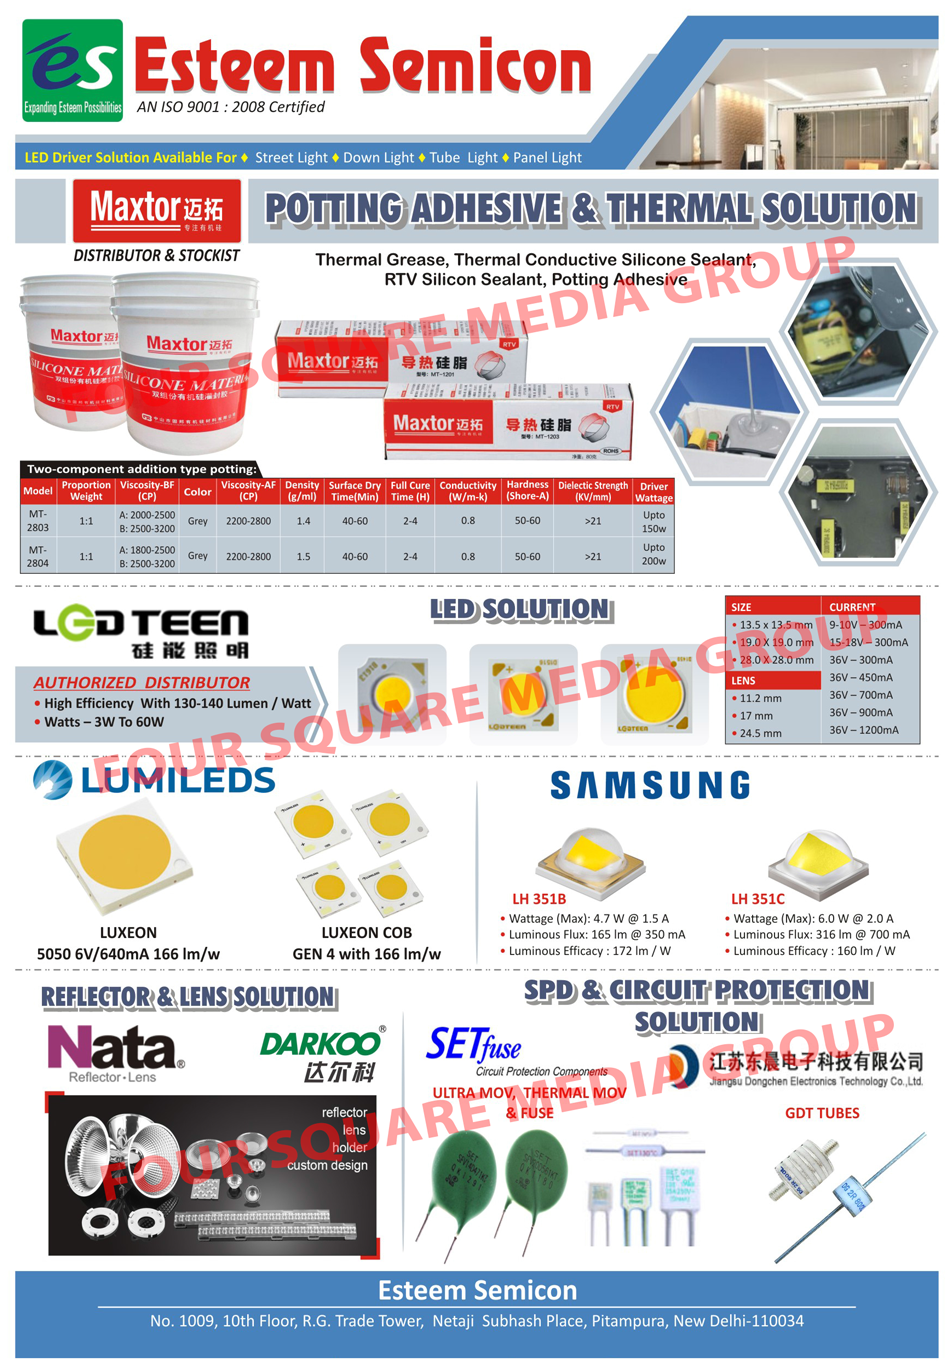 Potting Adhesive Solution, Thermal Solution, Led Solution, SPD Protection Solution, Circuit Protection Solution, Thermal Grease, Thermal Conductive Silicone Sealant, RTV Silicon Sealant, Led Driver Solution, Reflector Solution, Lens Solution, GDT Tubes, Ultra MOV, Thermal MOV, Thermal Fuses, Reflectors Lens, COB